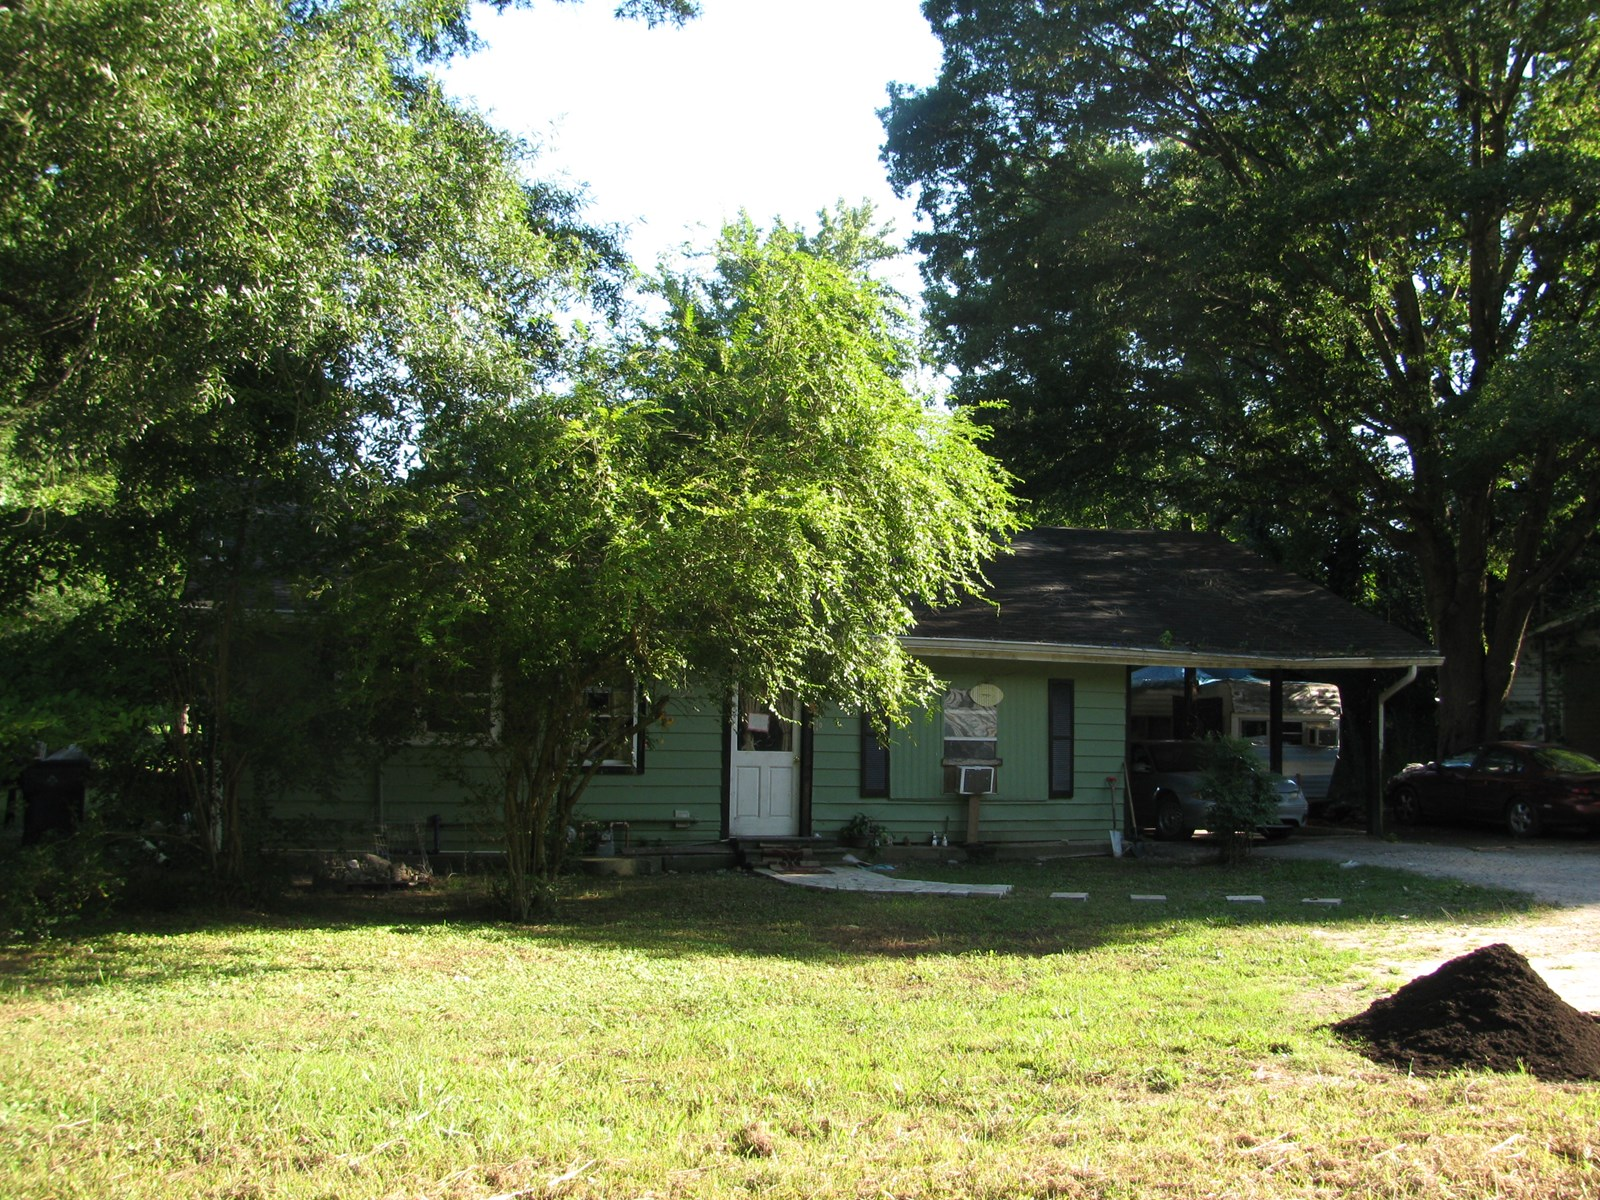 RENT HOUSE FOR SALE IN SAVANNAH, TN, 3 BEDROOM HOME